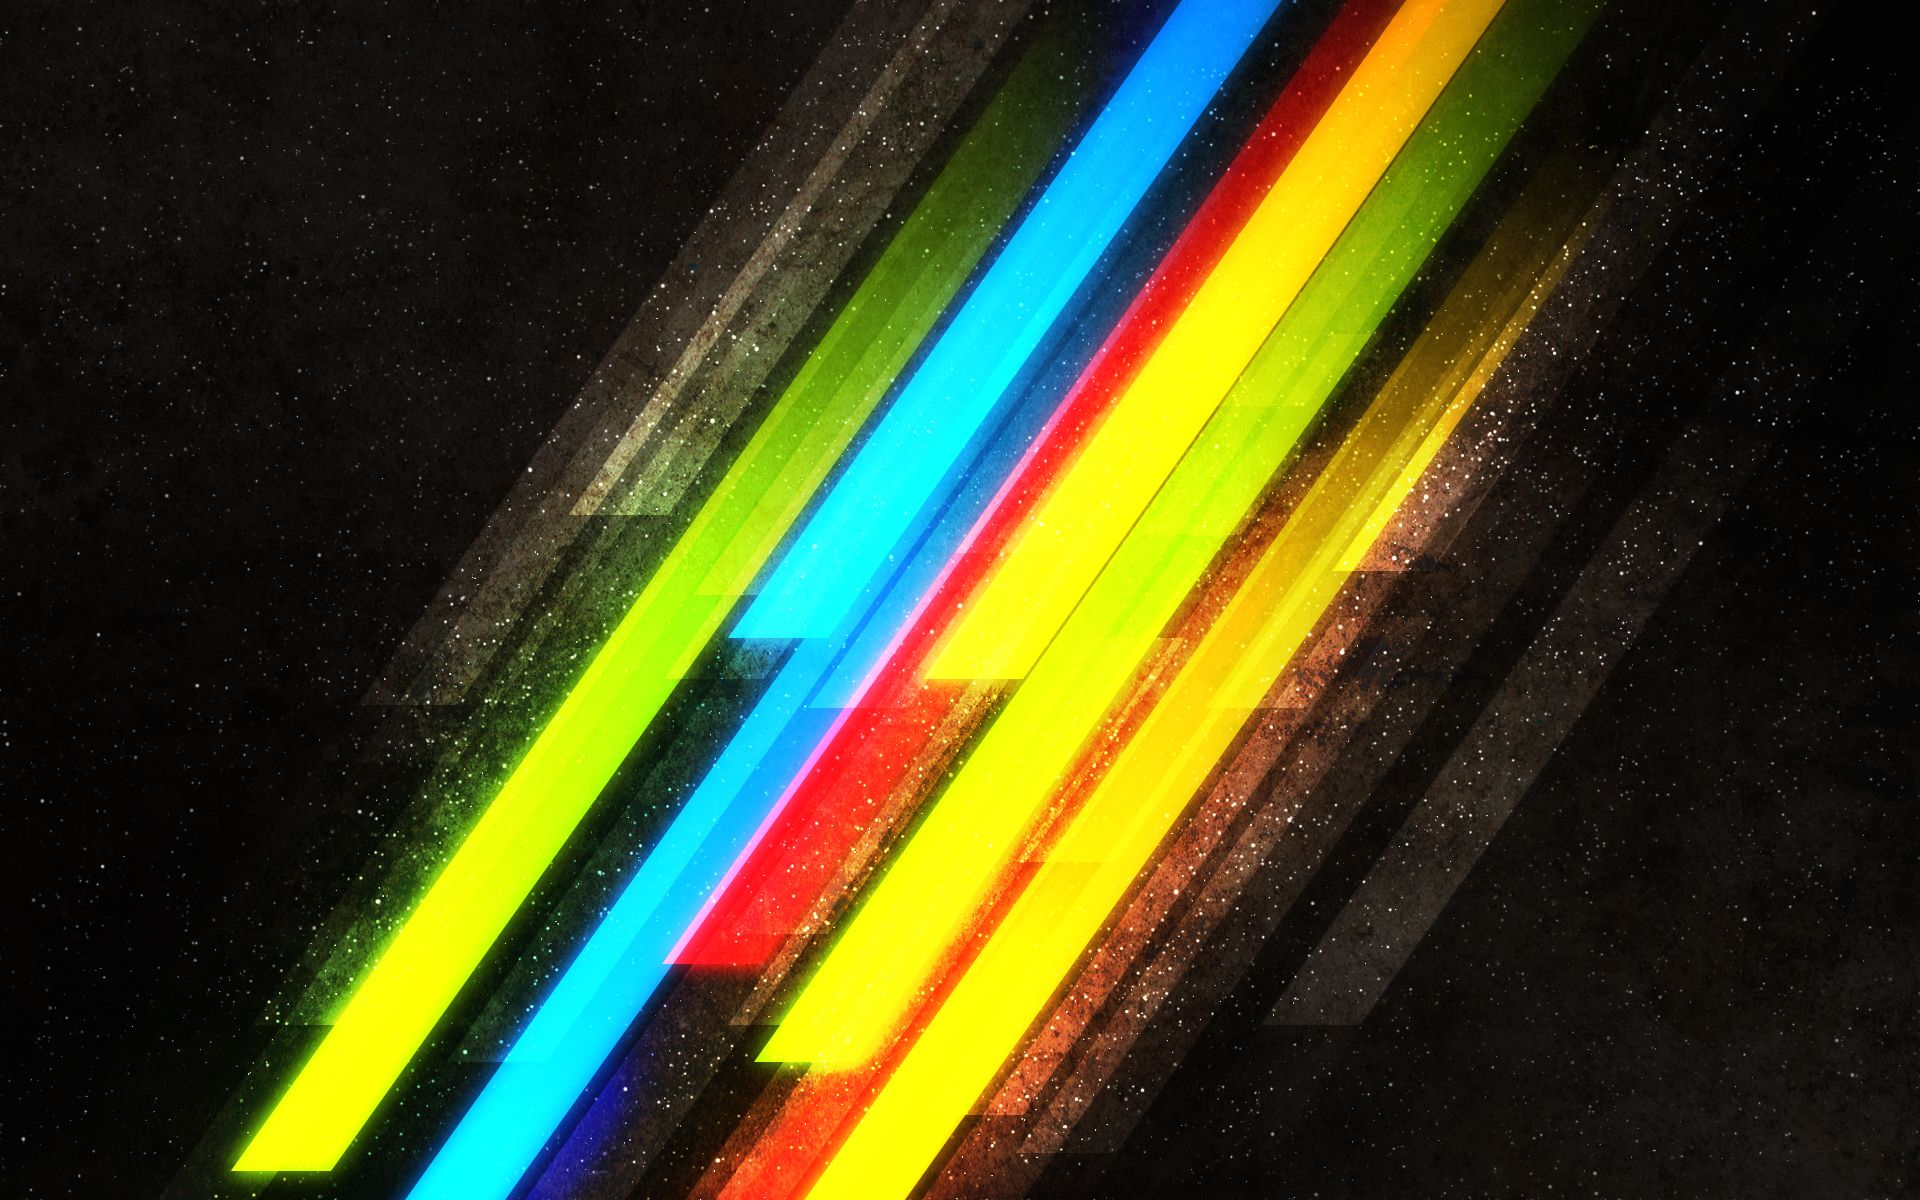 Colorfull Abstract Wallpaper 1080p Abstract Wallpaper Lines Wallpaper Black Wallpaper